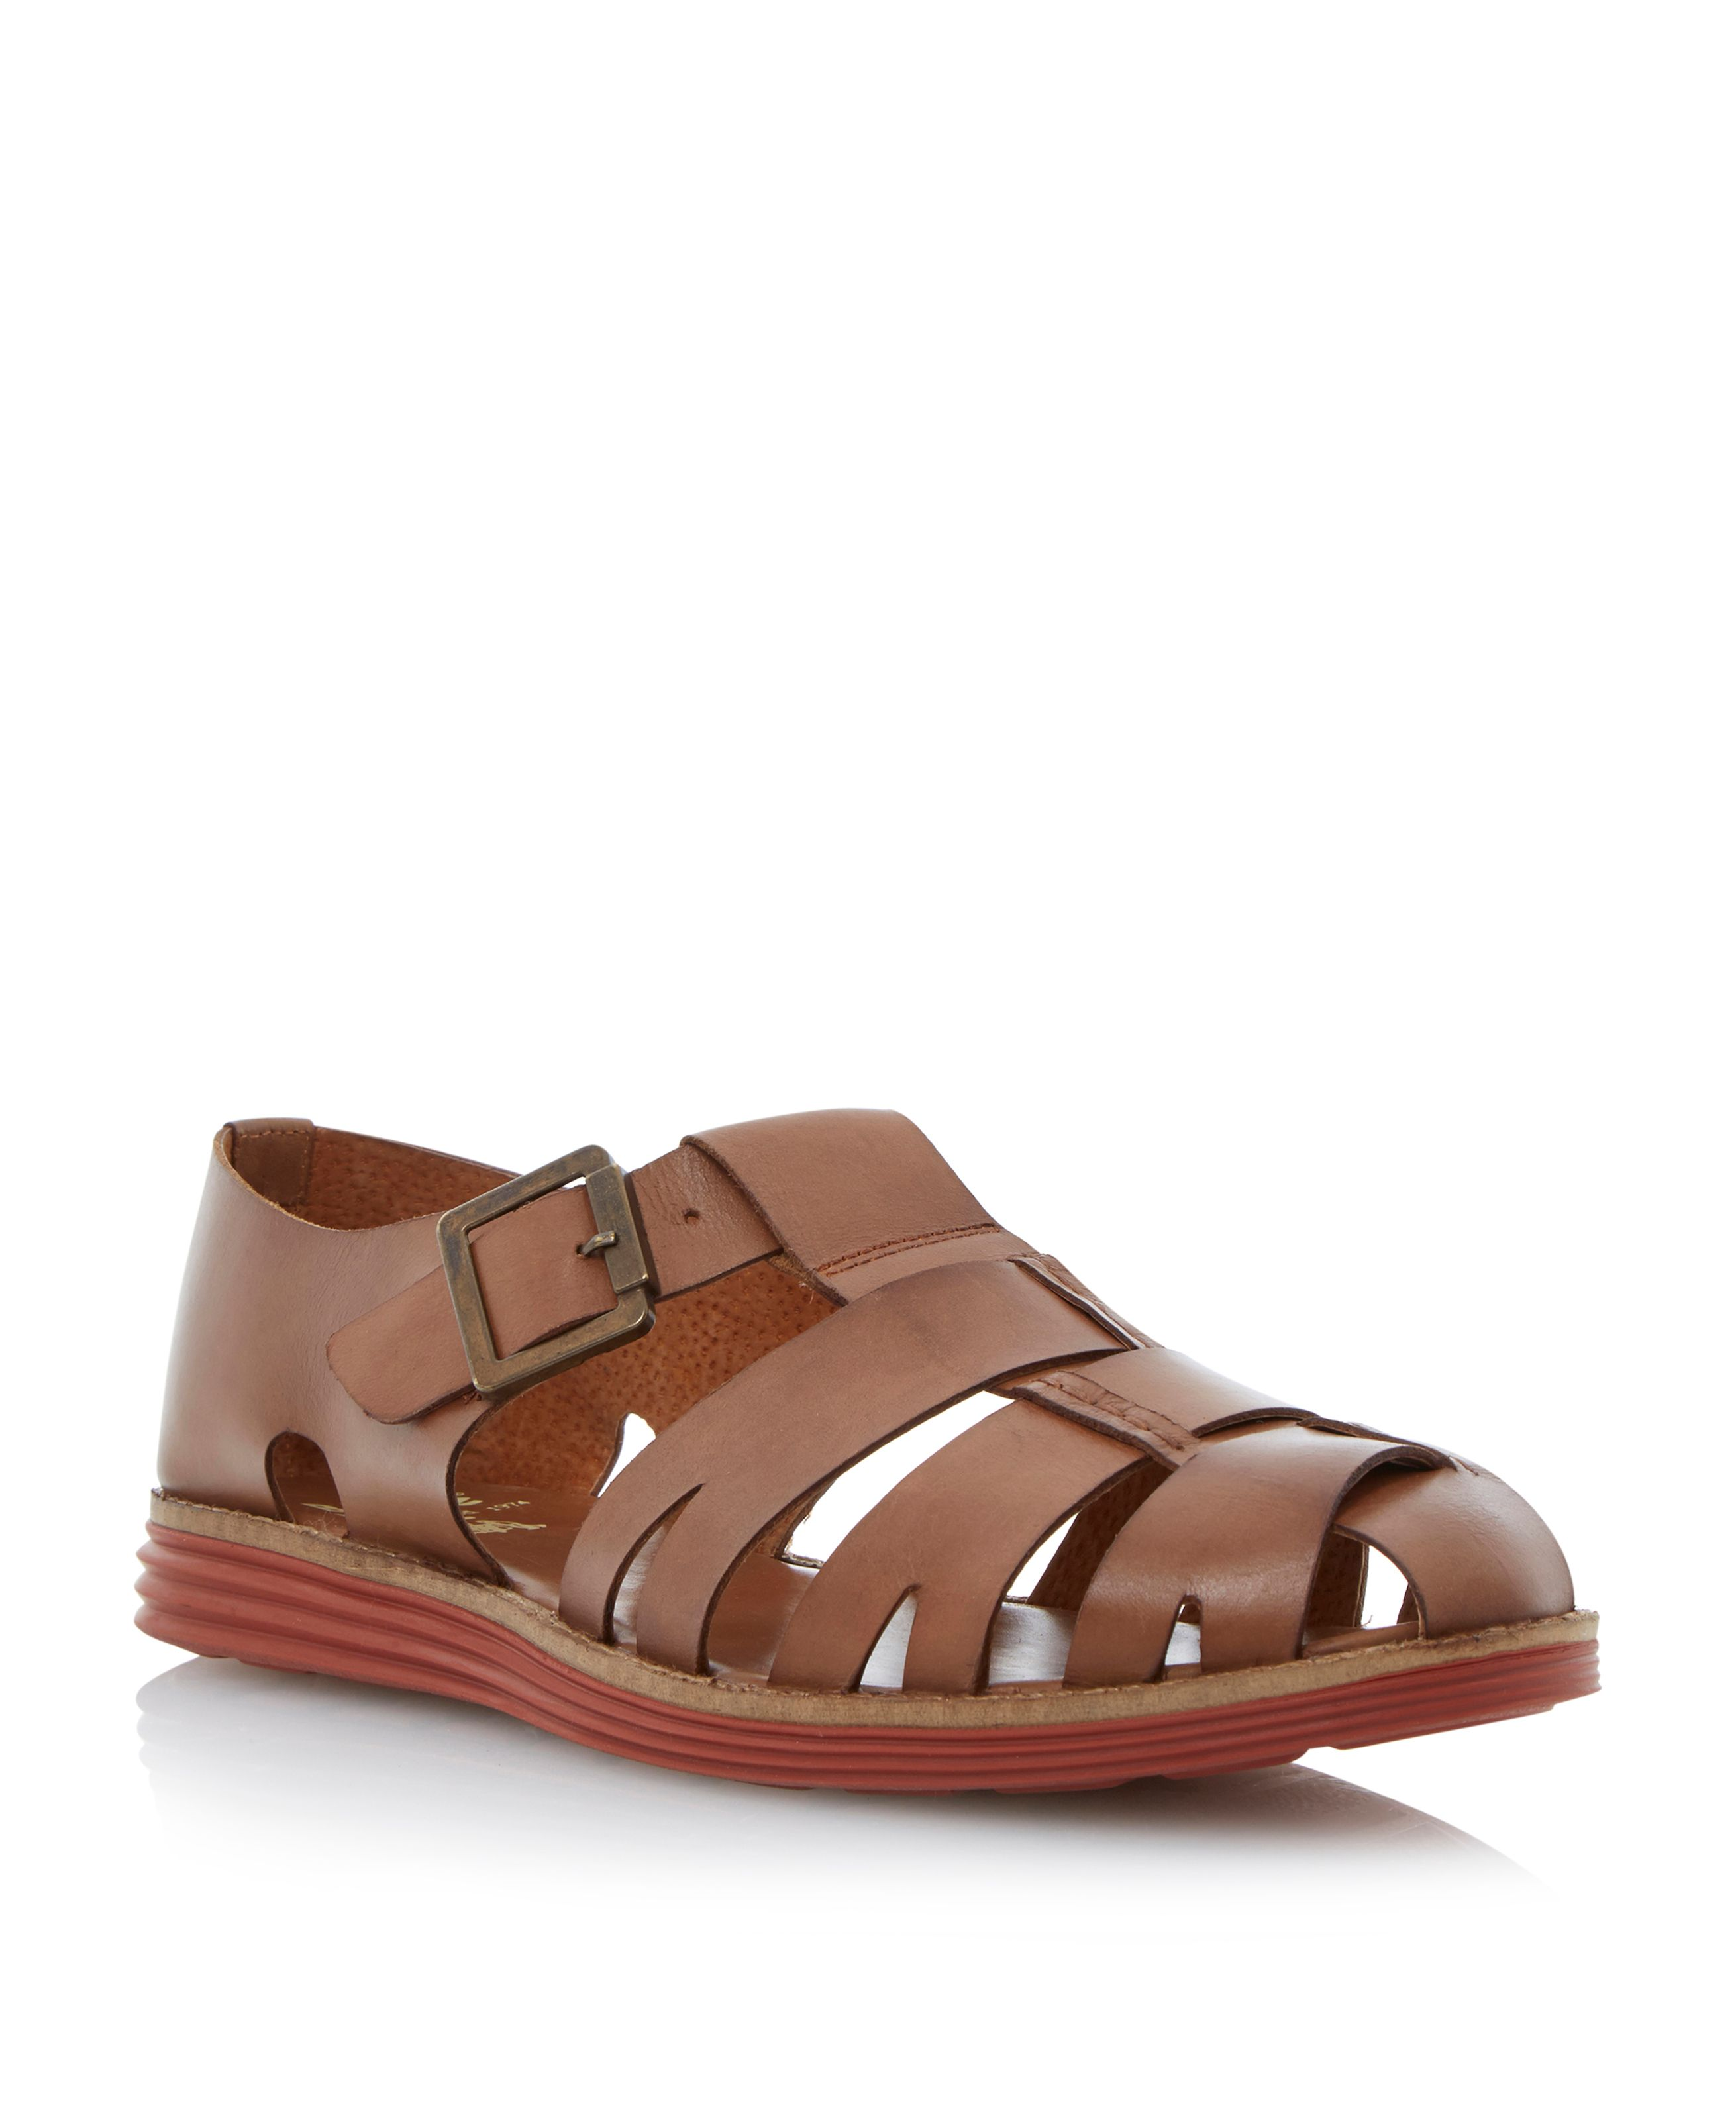 Fisherman sporty sole buckle sandals